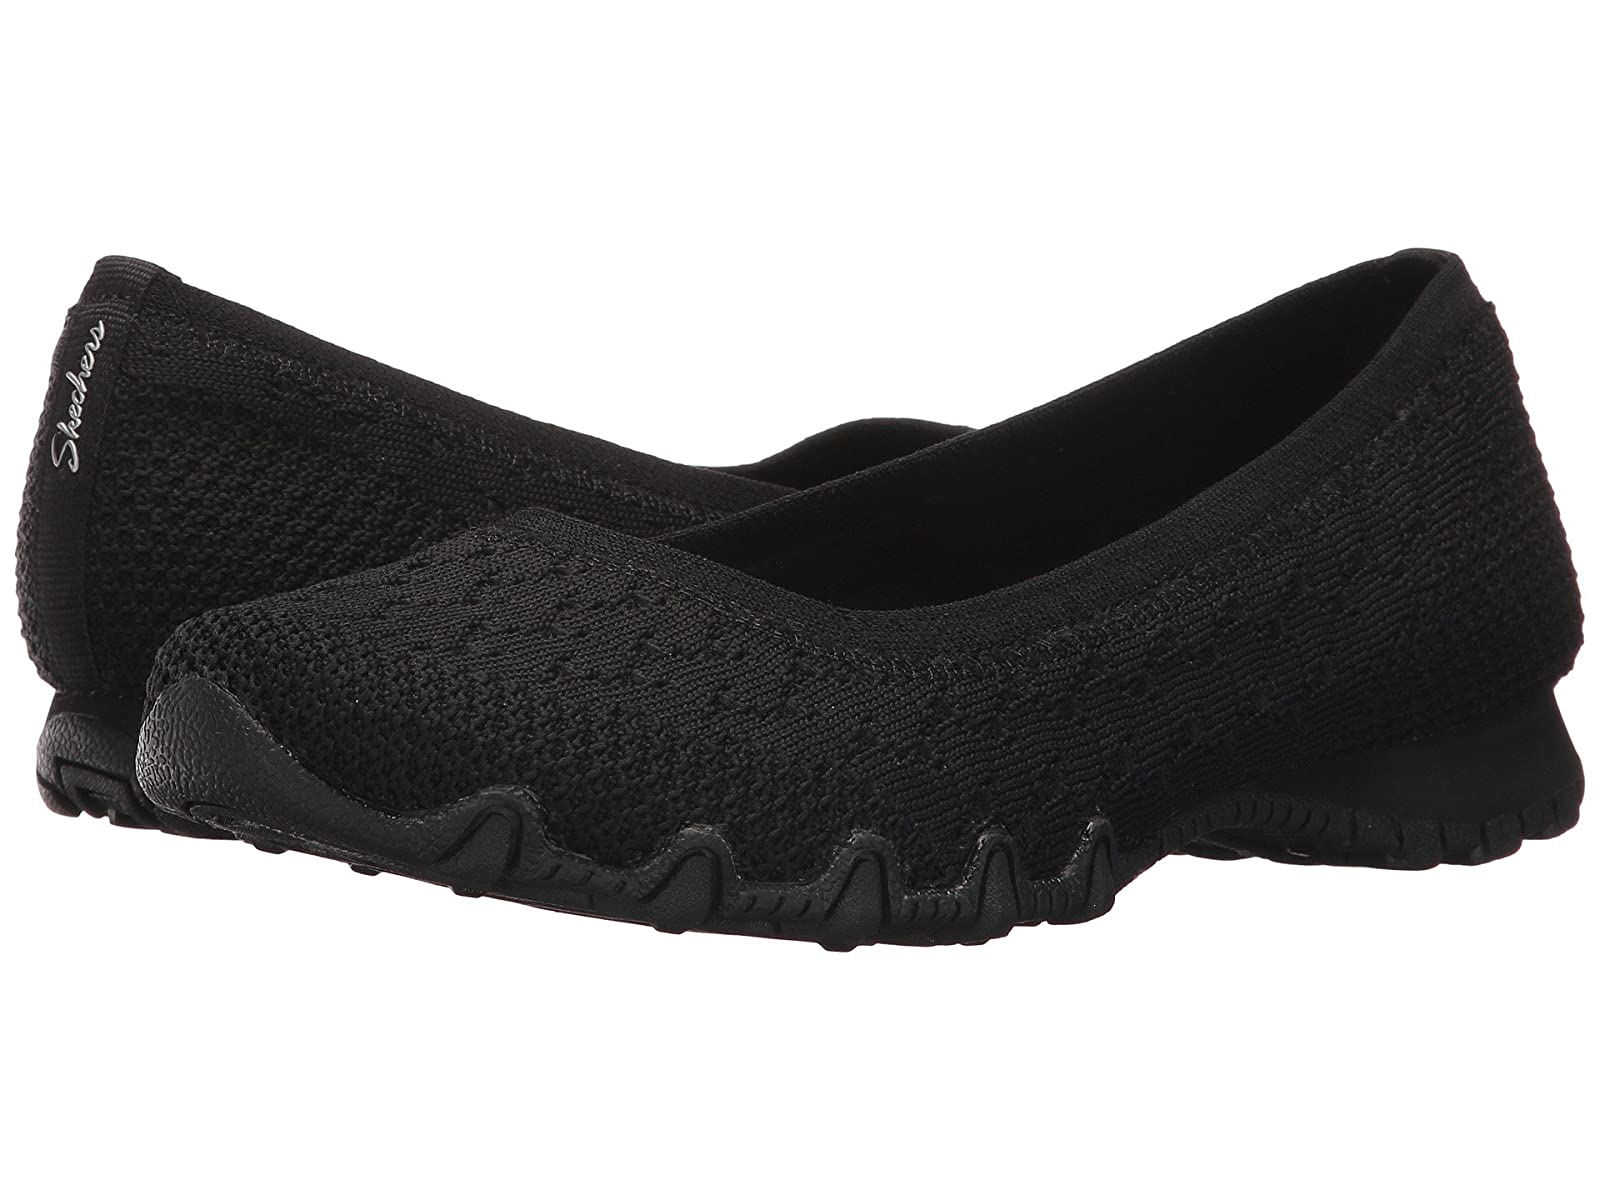 SKECHERS Bikers - Witty KnitCheap and distinctive eye-catching shoes